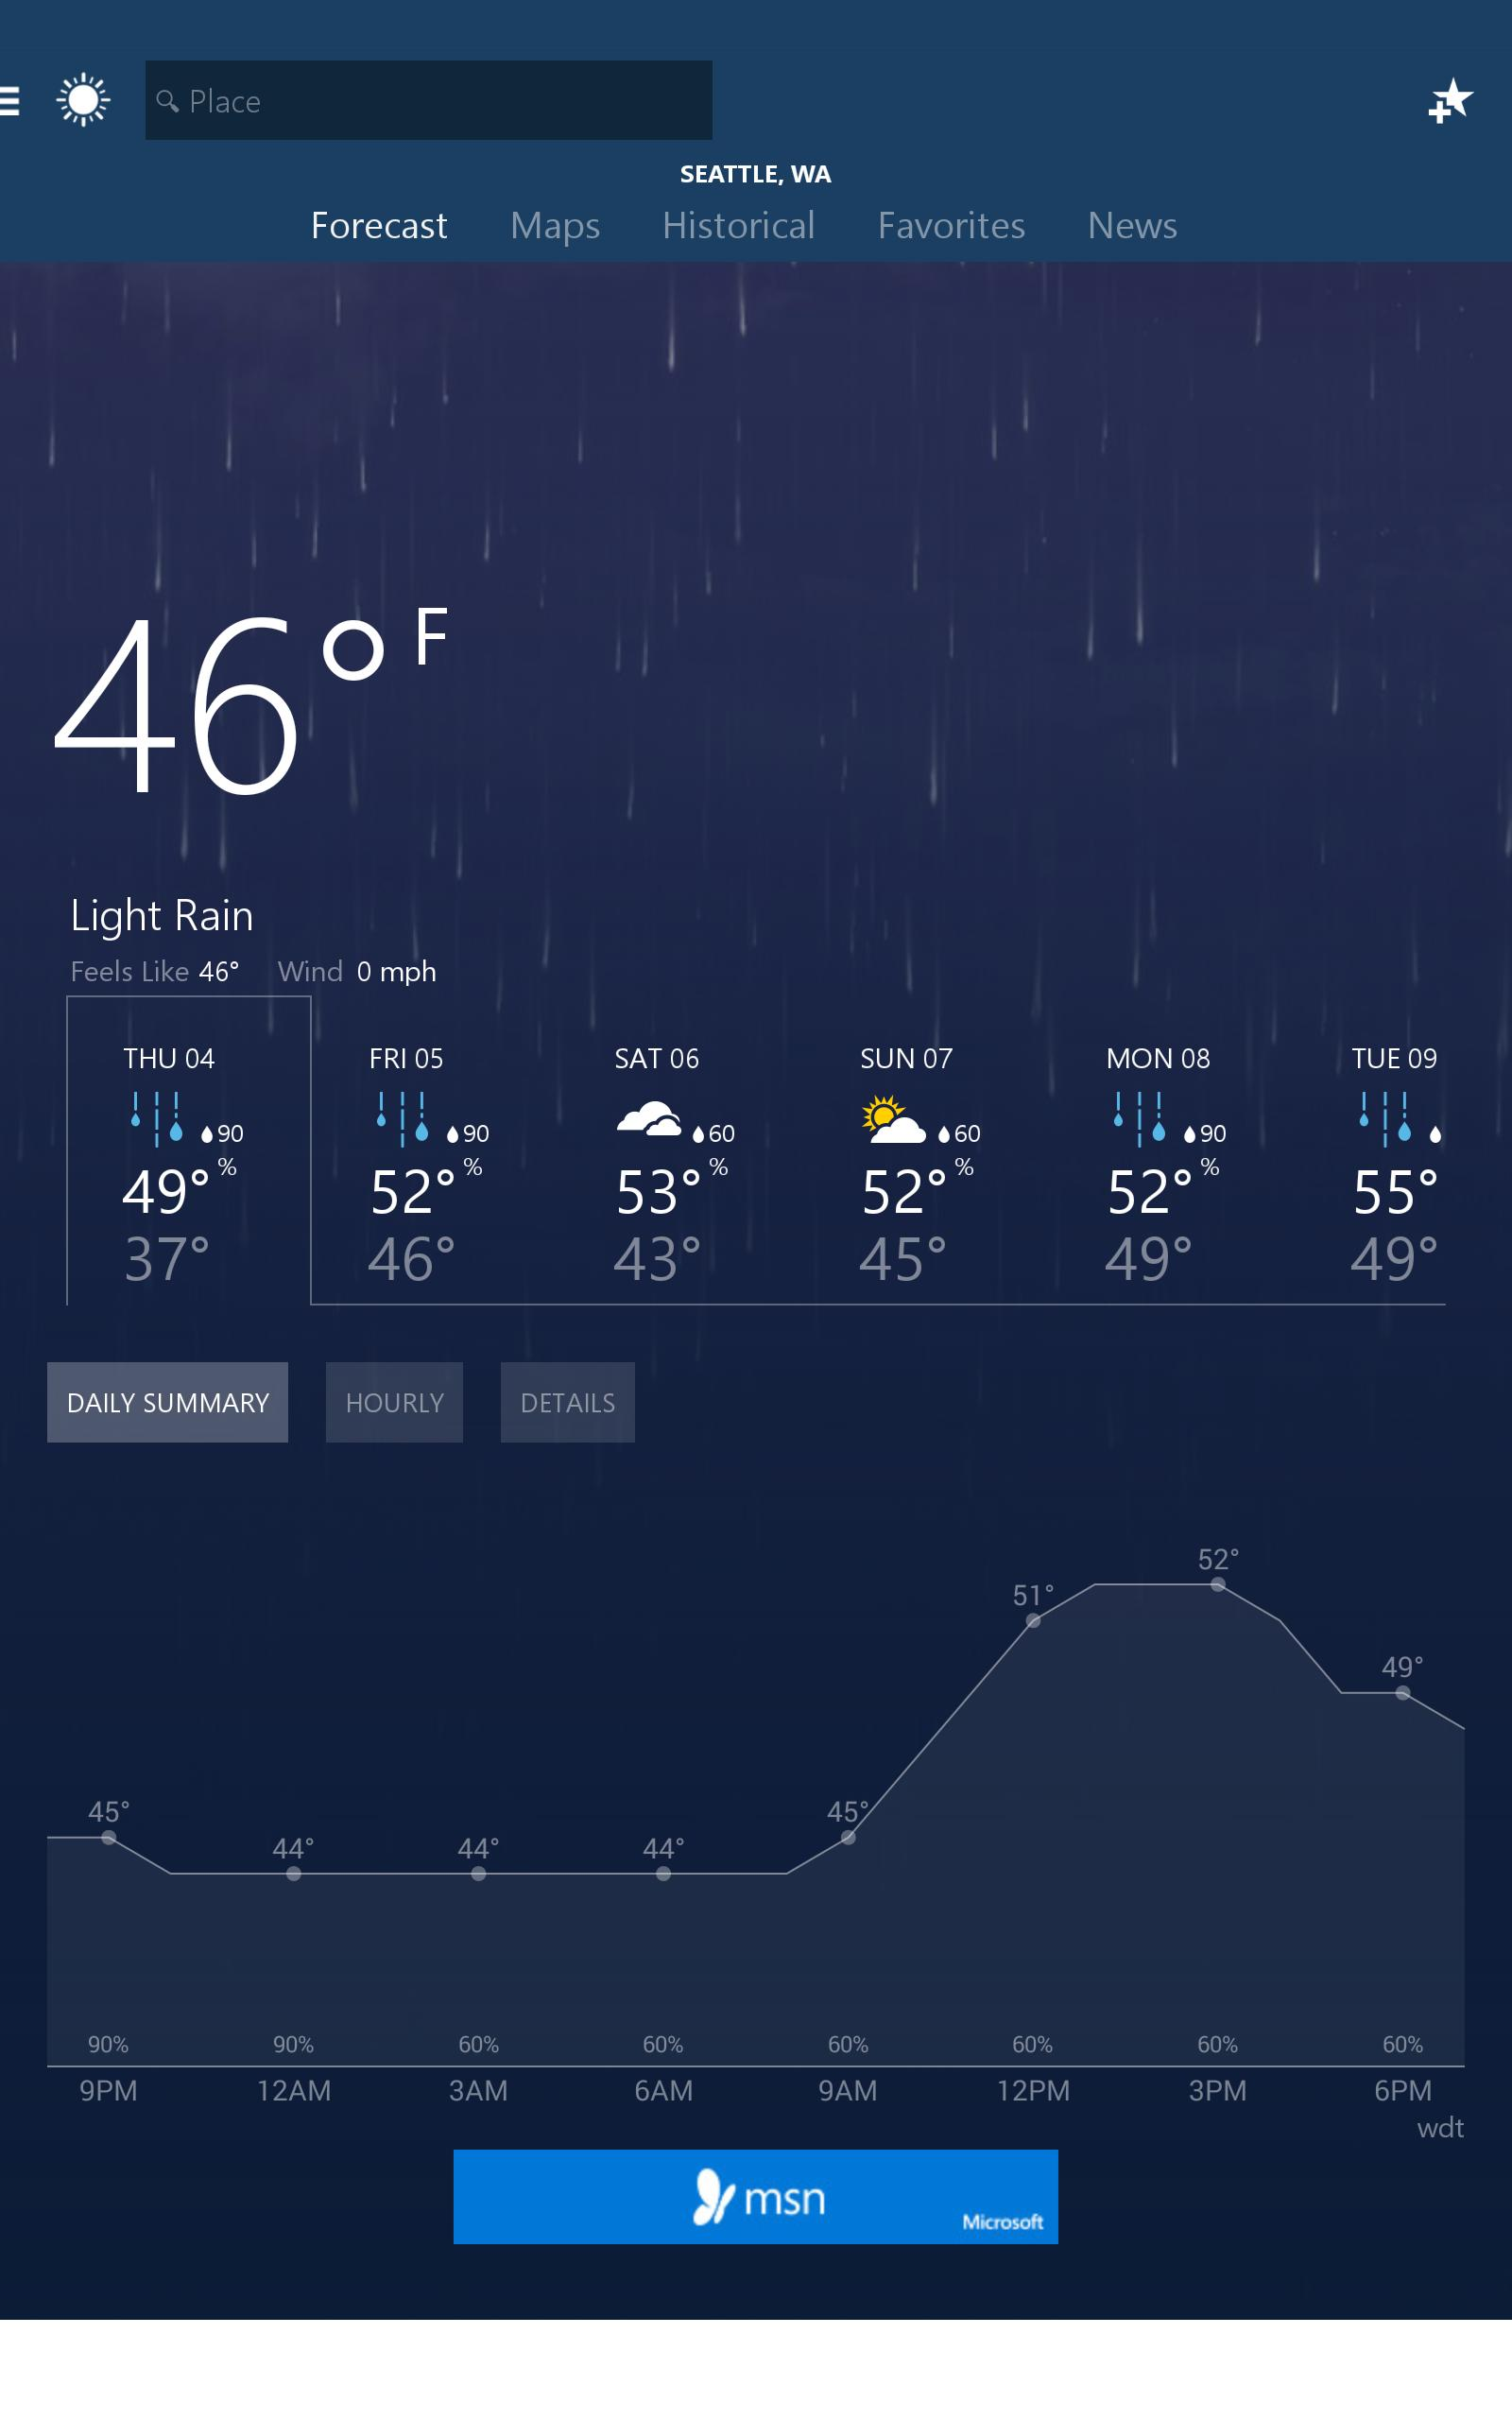 MSN Weather - Forecast & Maps 1.2.0 Screenshot 5